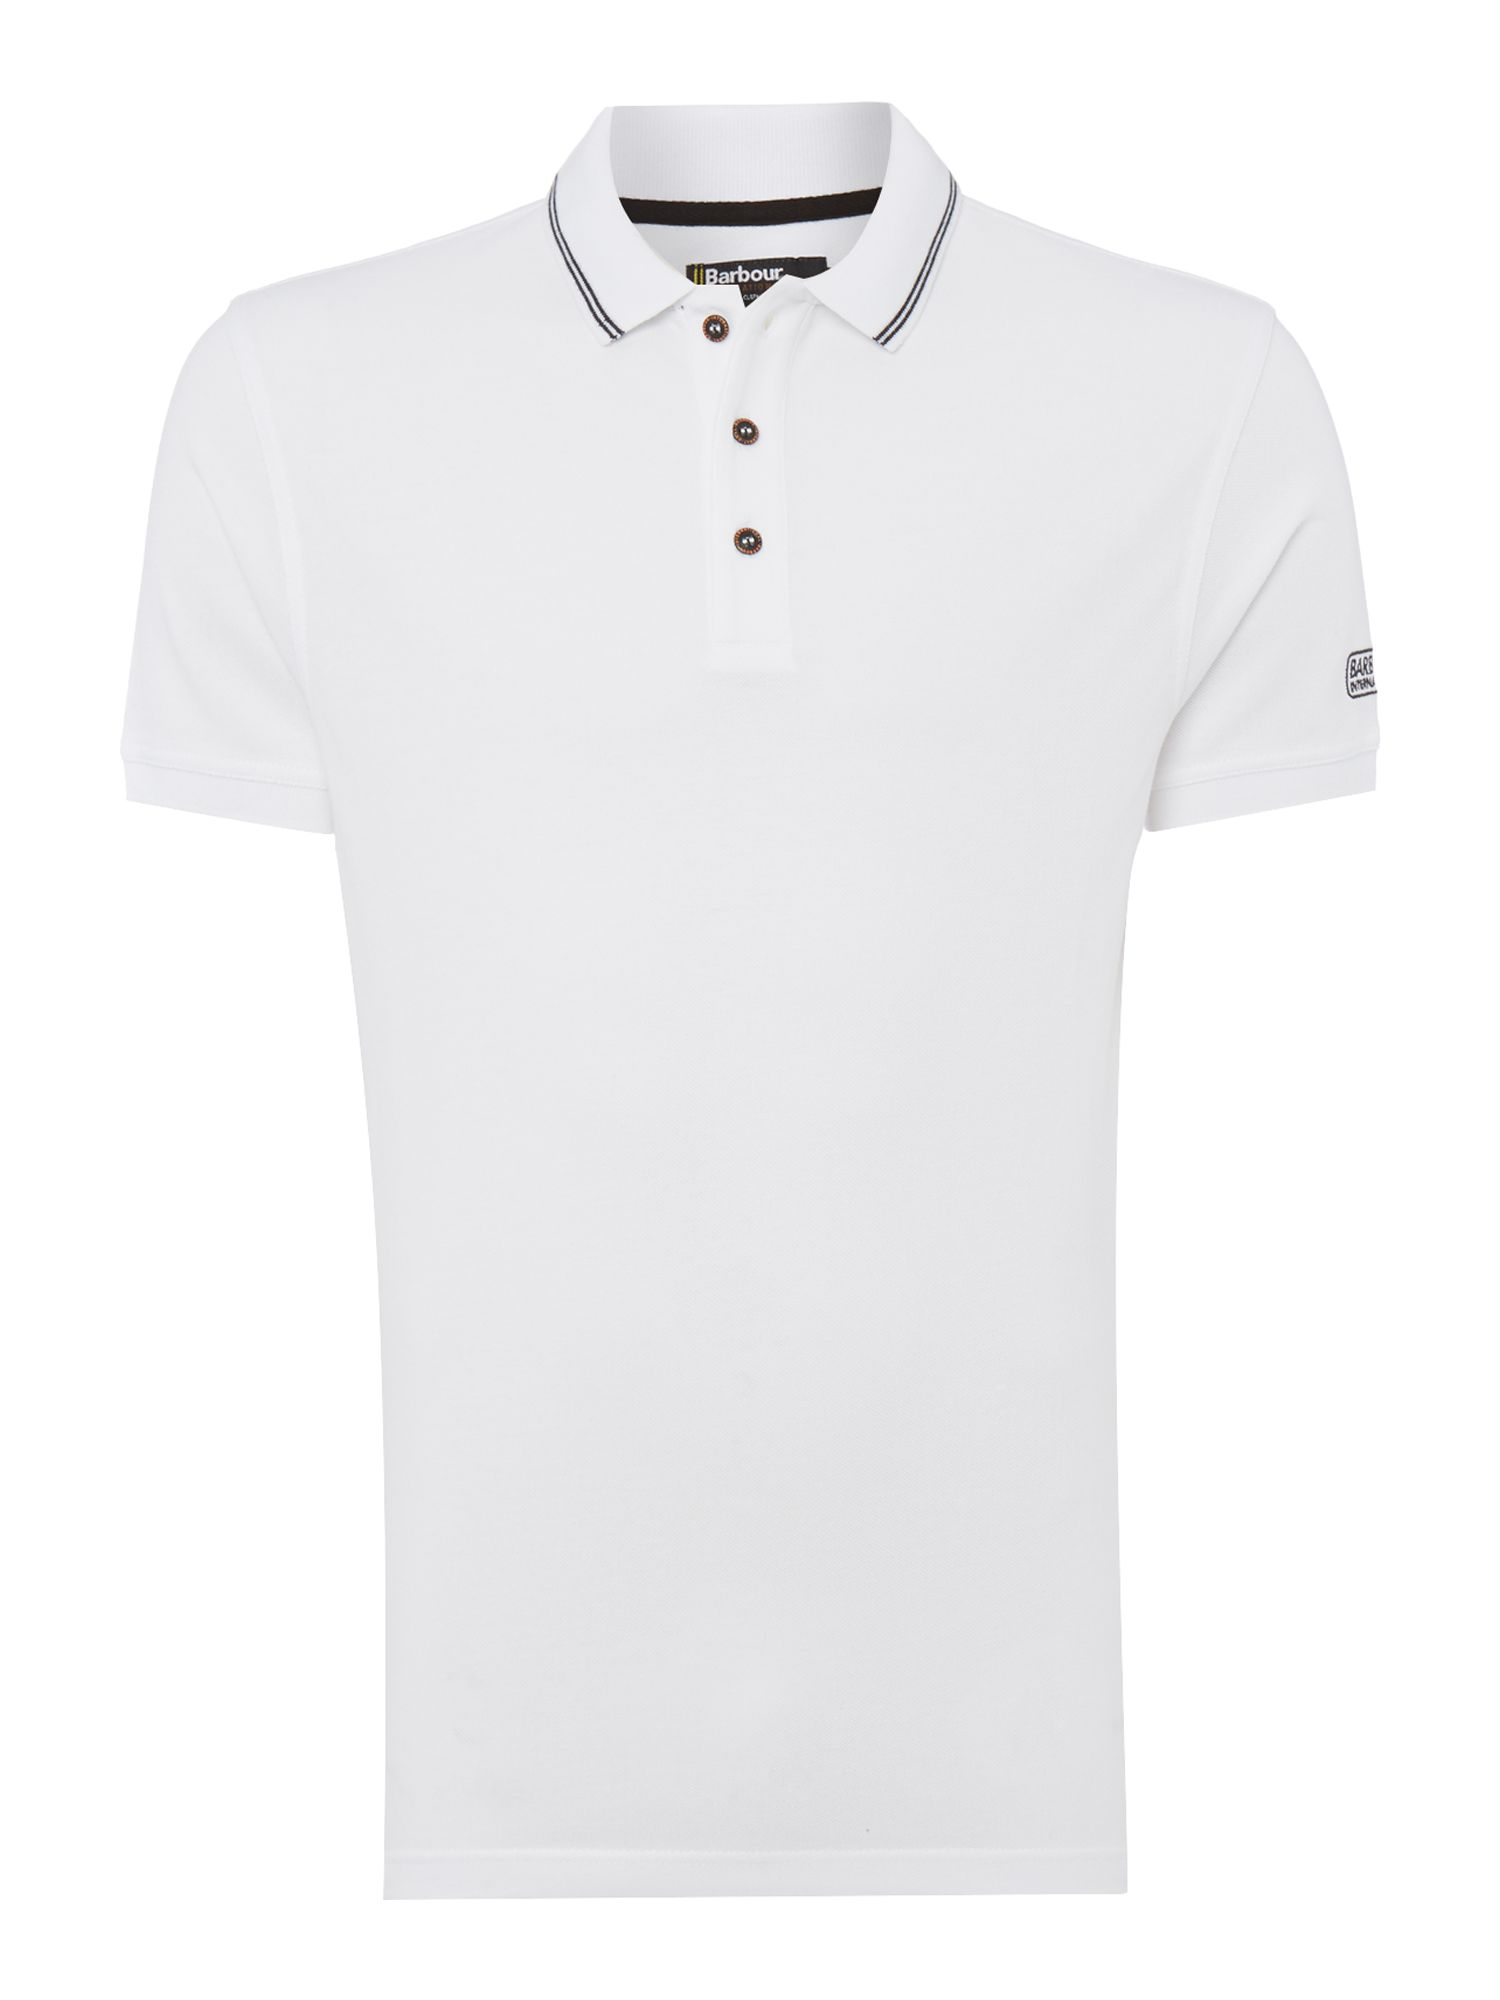 Men's Barbour International Polo Shirt, Black/White